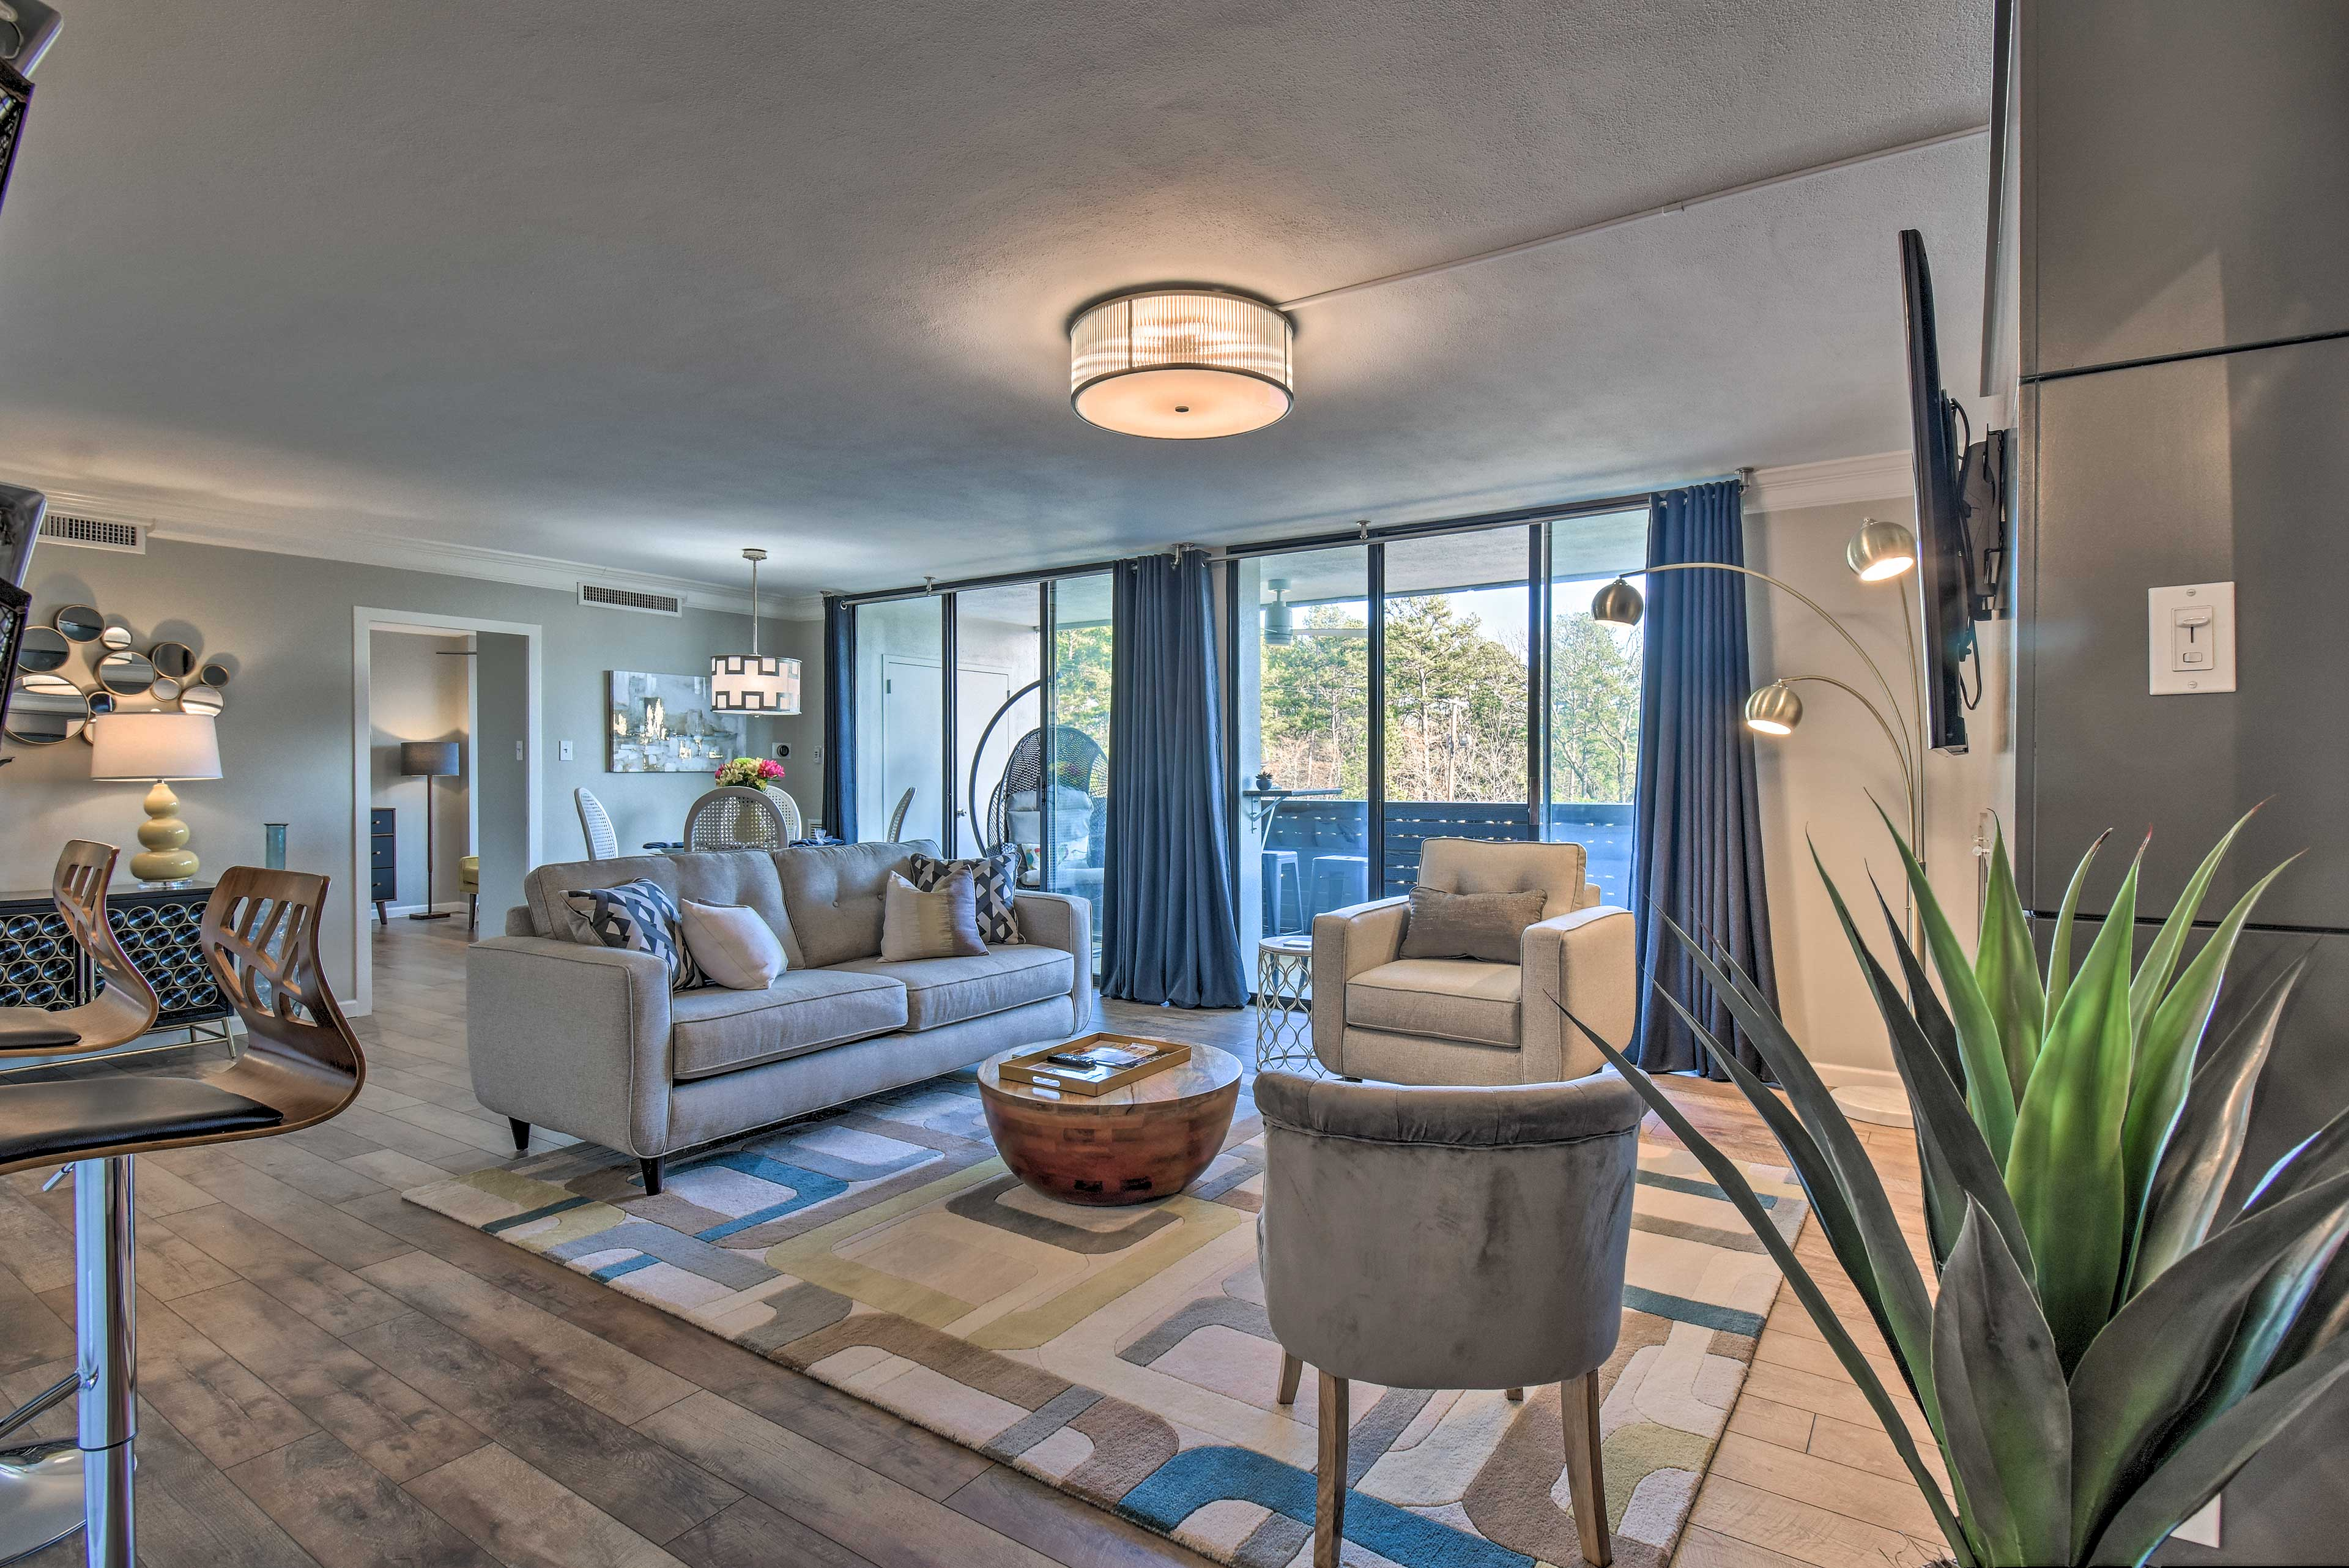 Make yourself at home in the 1,140-square-foot interior boasting tasteful decor.